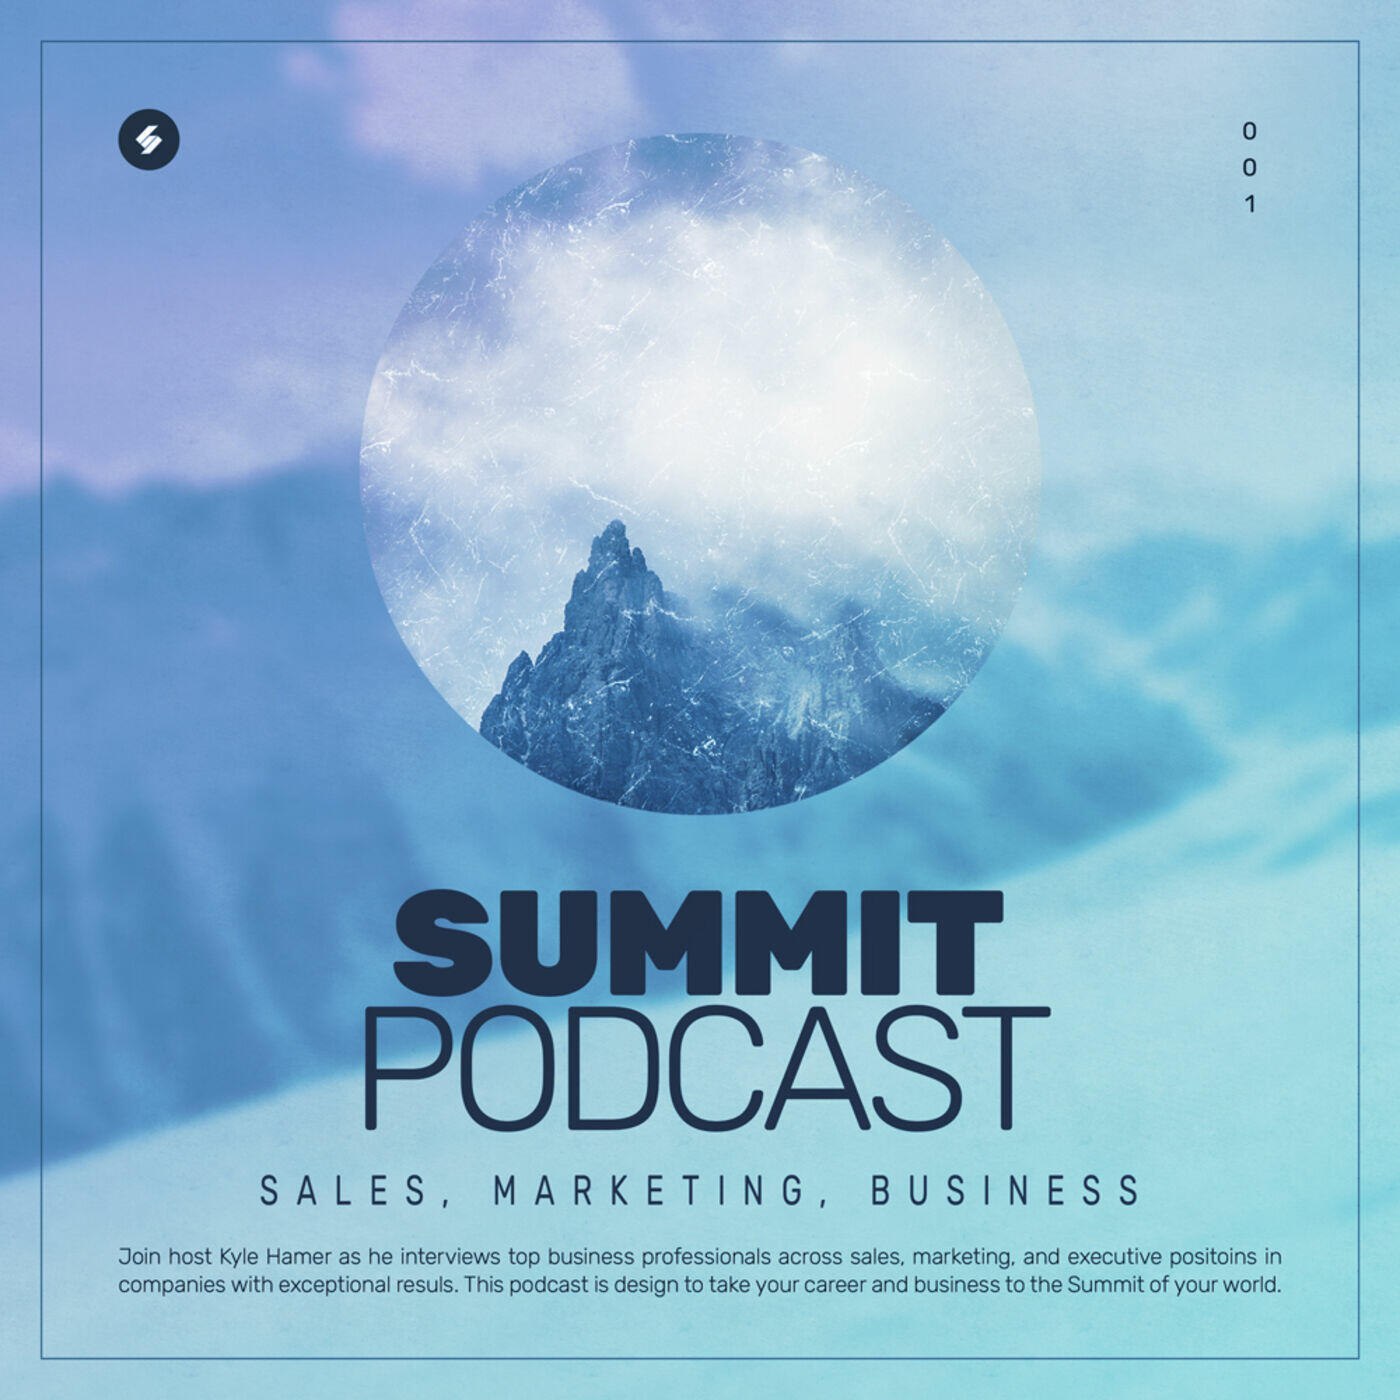 The Summit Podcast